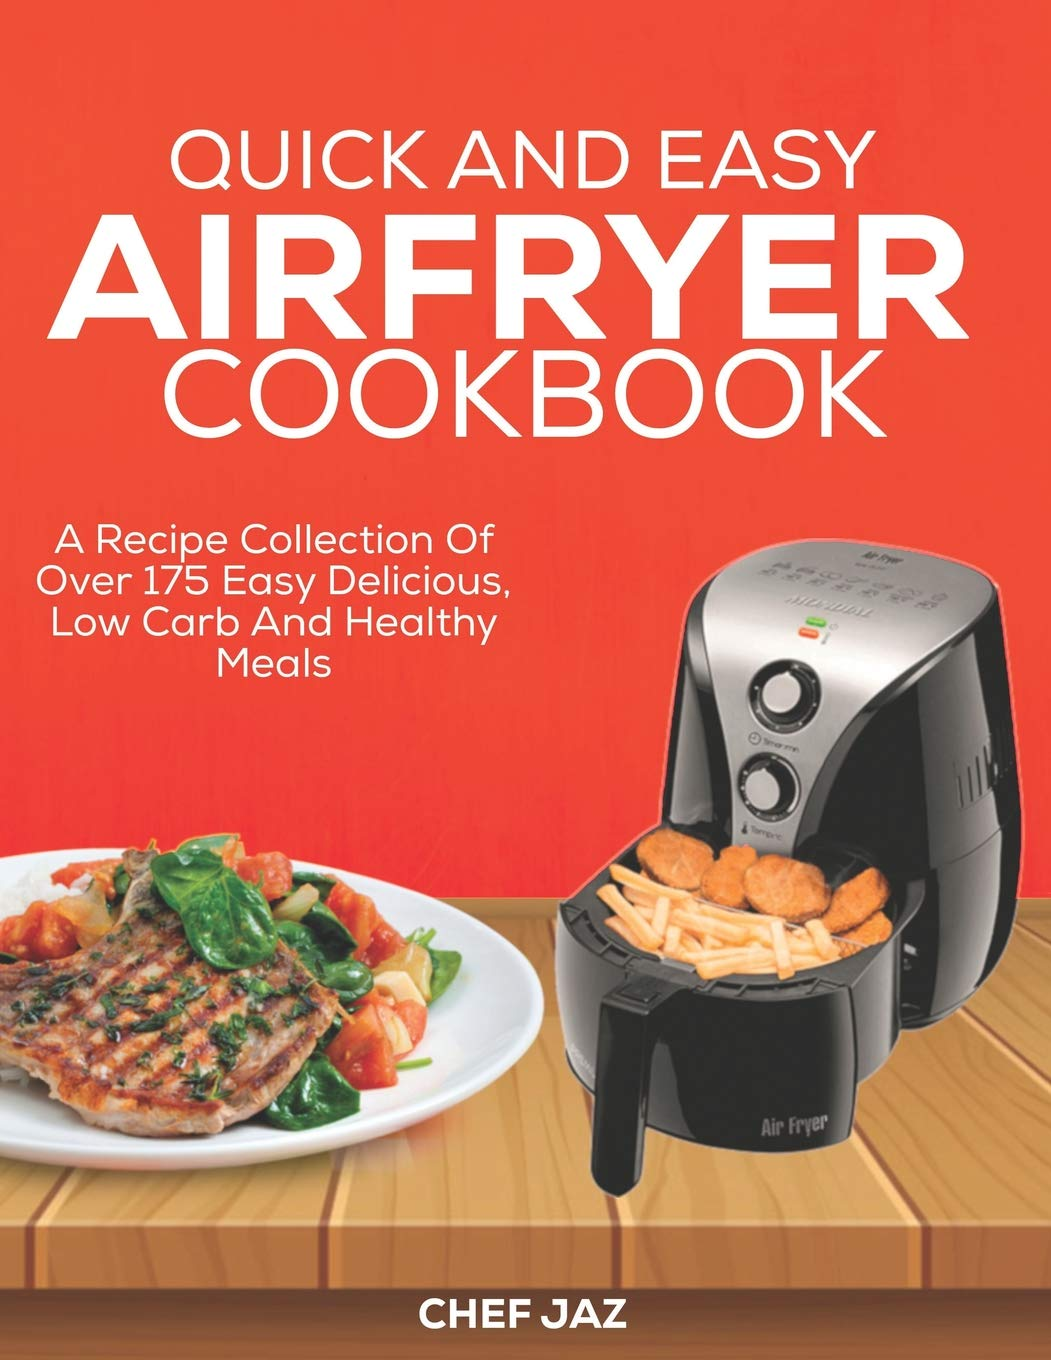 Quick and Easy Airfryer Cookbook: A Recipe collection of Over 175 Easy delicious,Low Carb and Healthy Meals